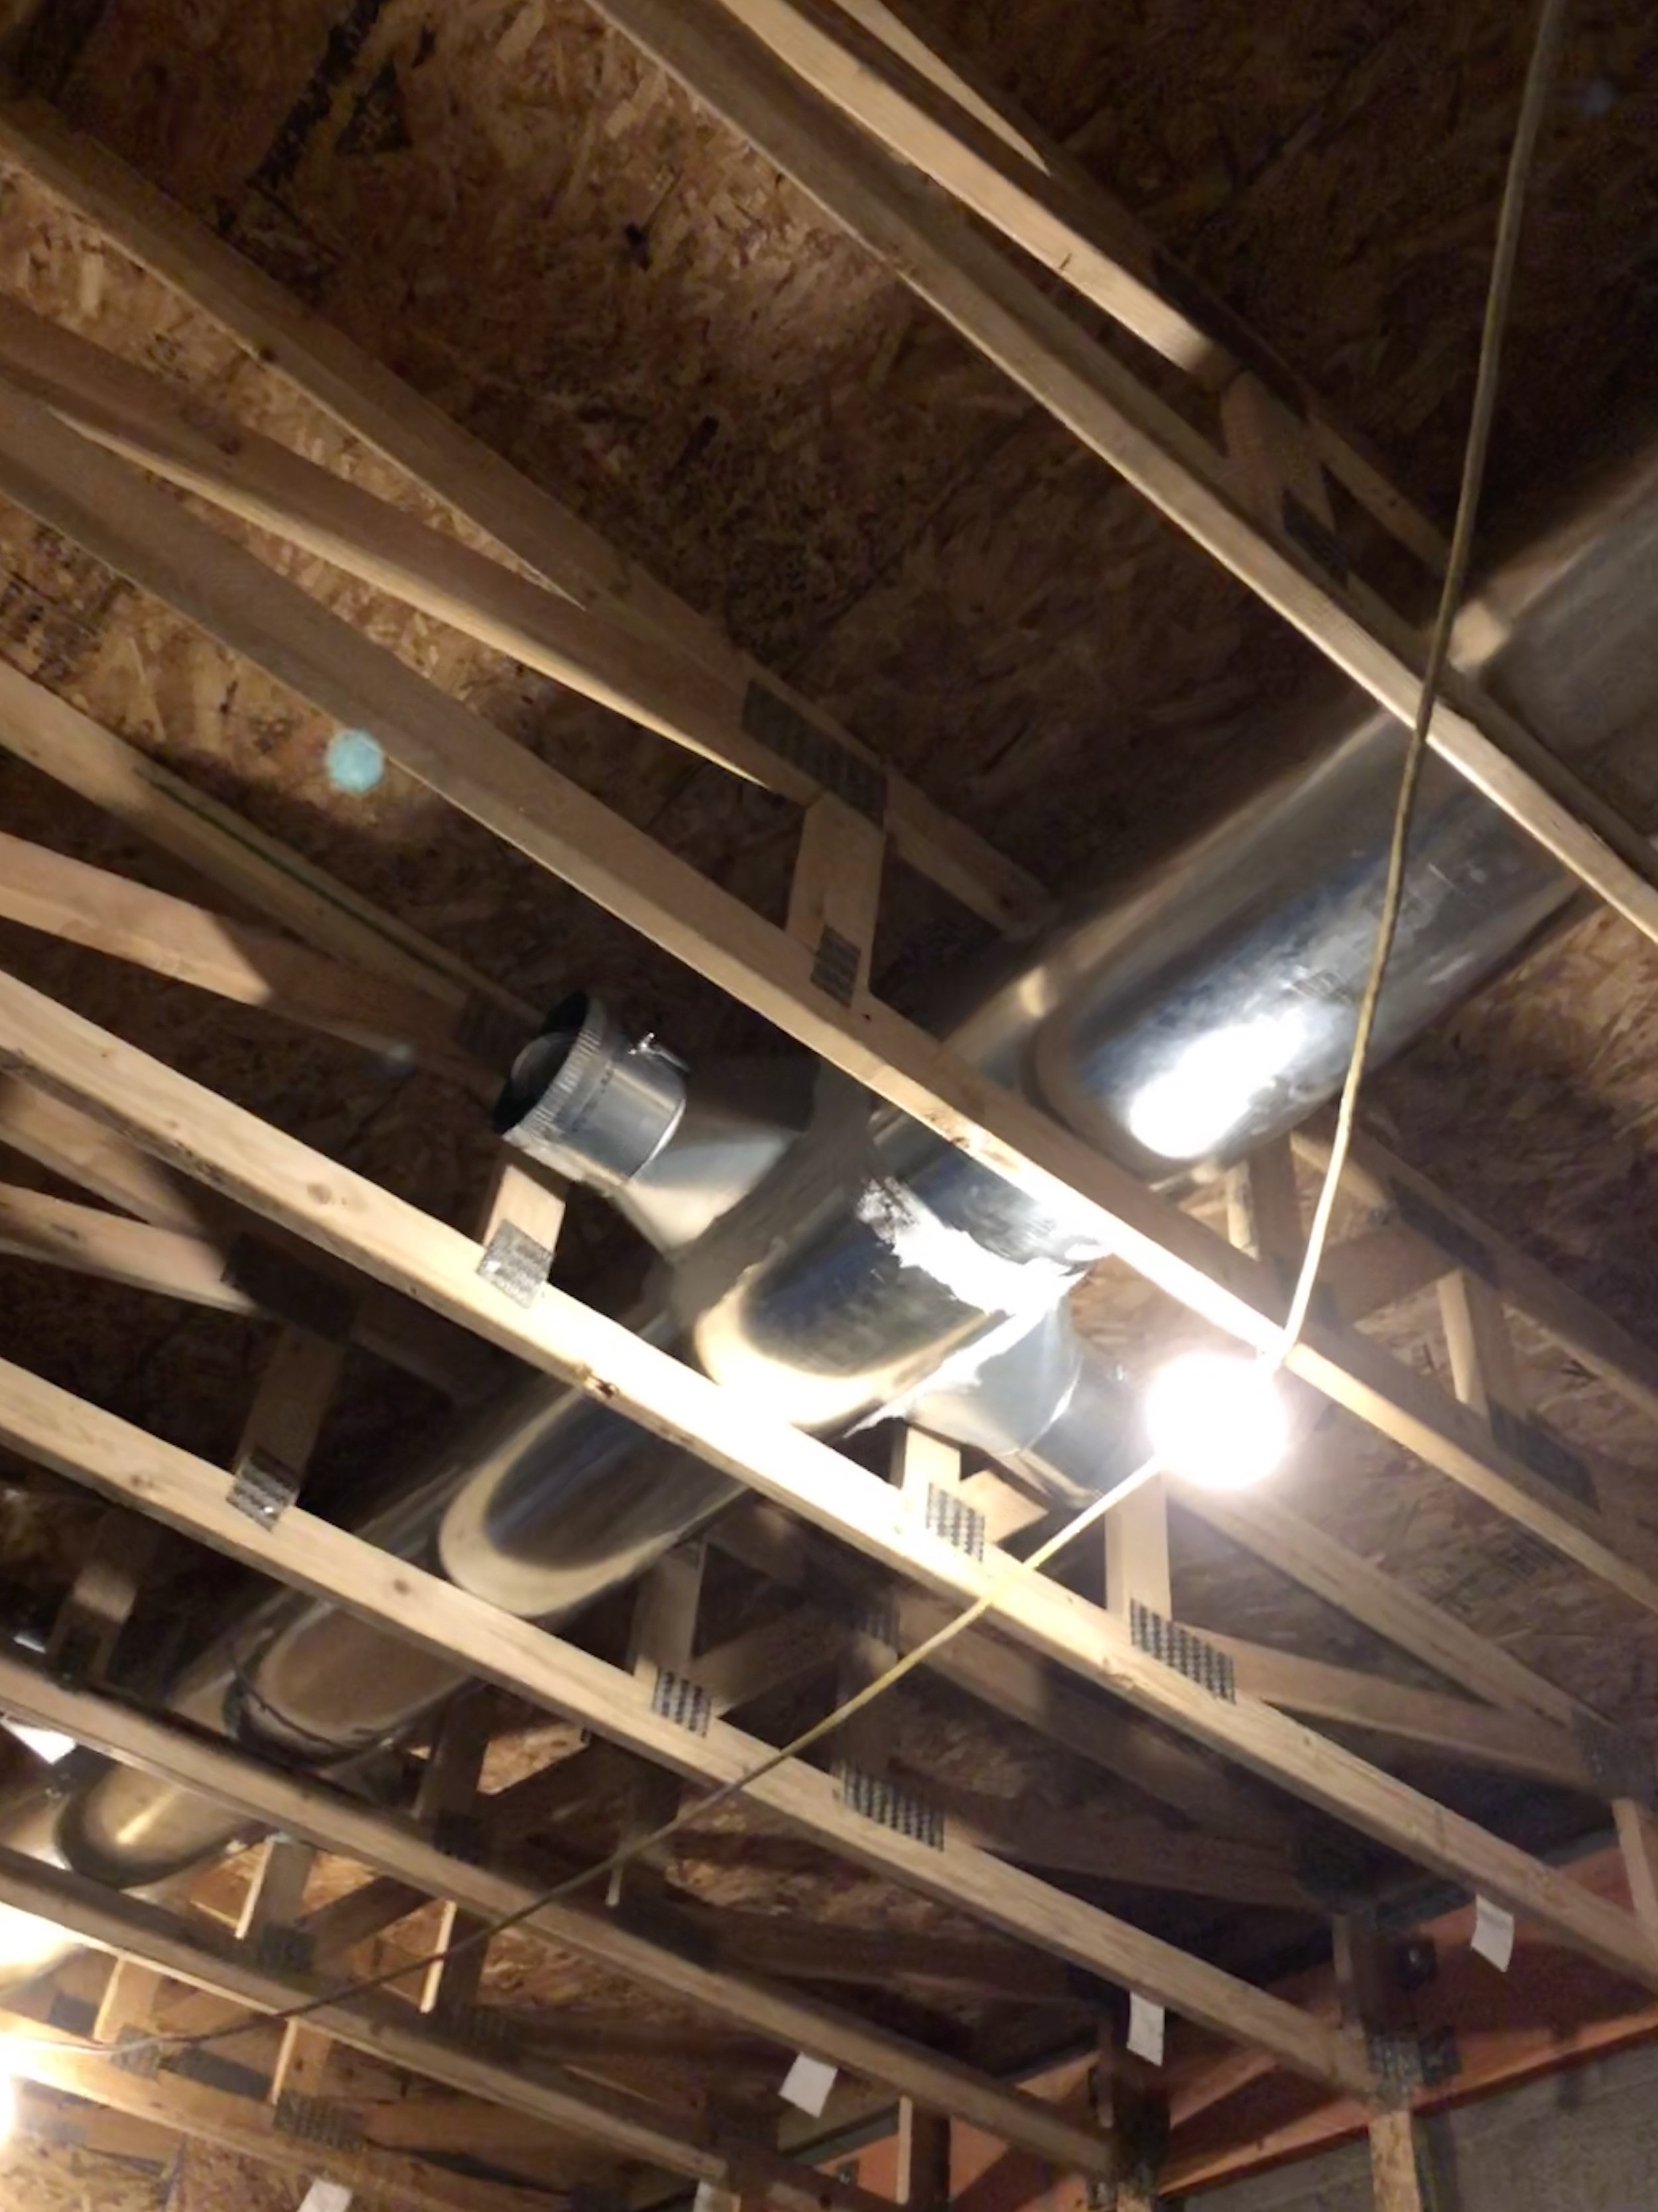 HVAC work began with some duct work in the lobby. Some careful planning allowed for the ducts to live in the trusses and buy us some much appreciated ceiling height.